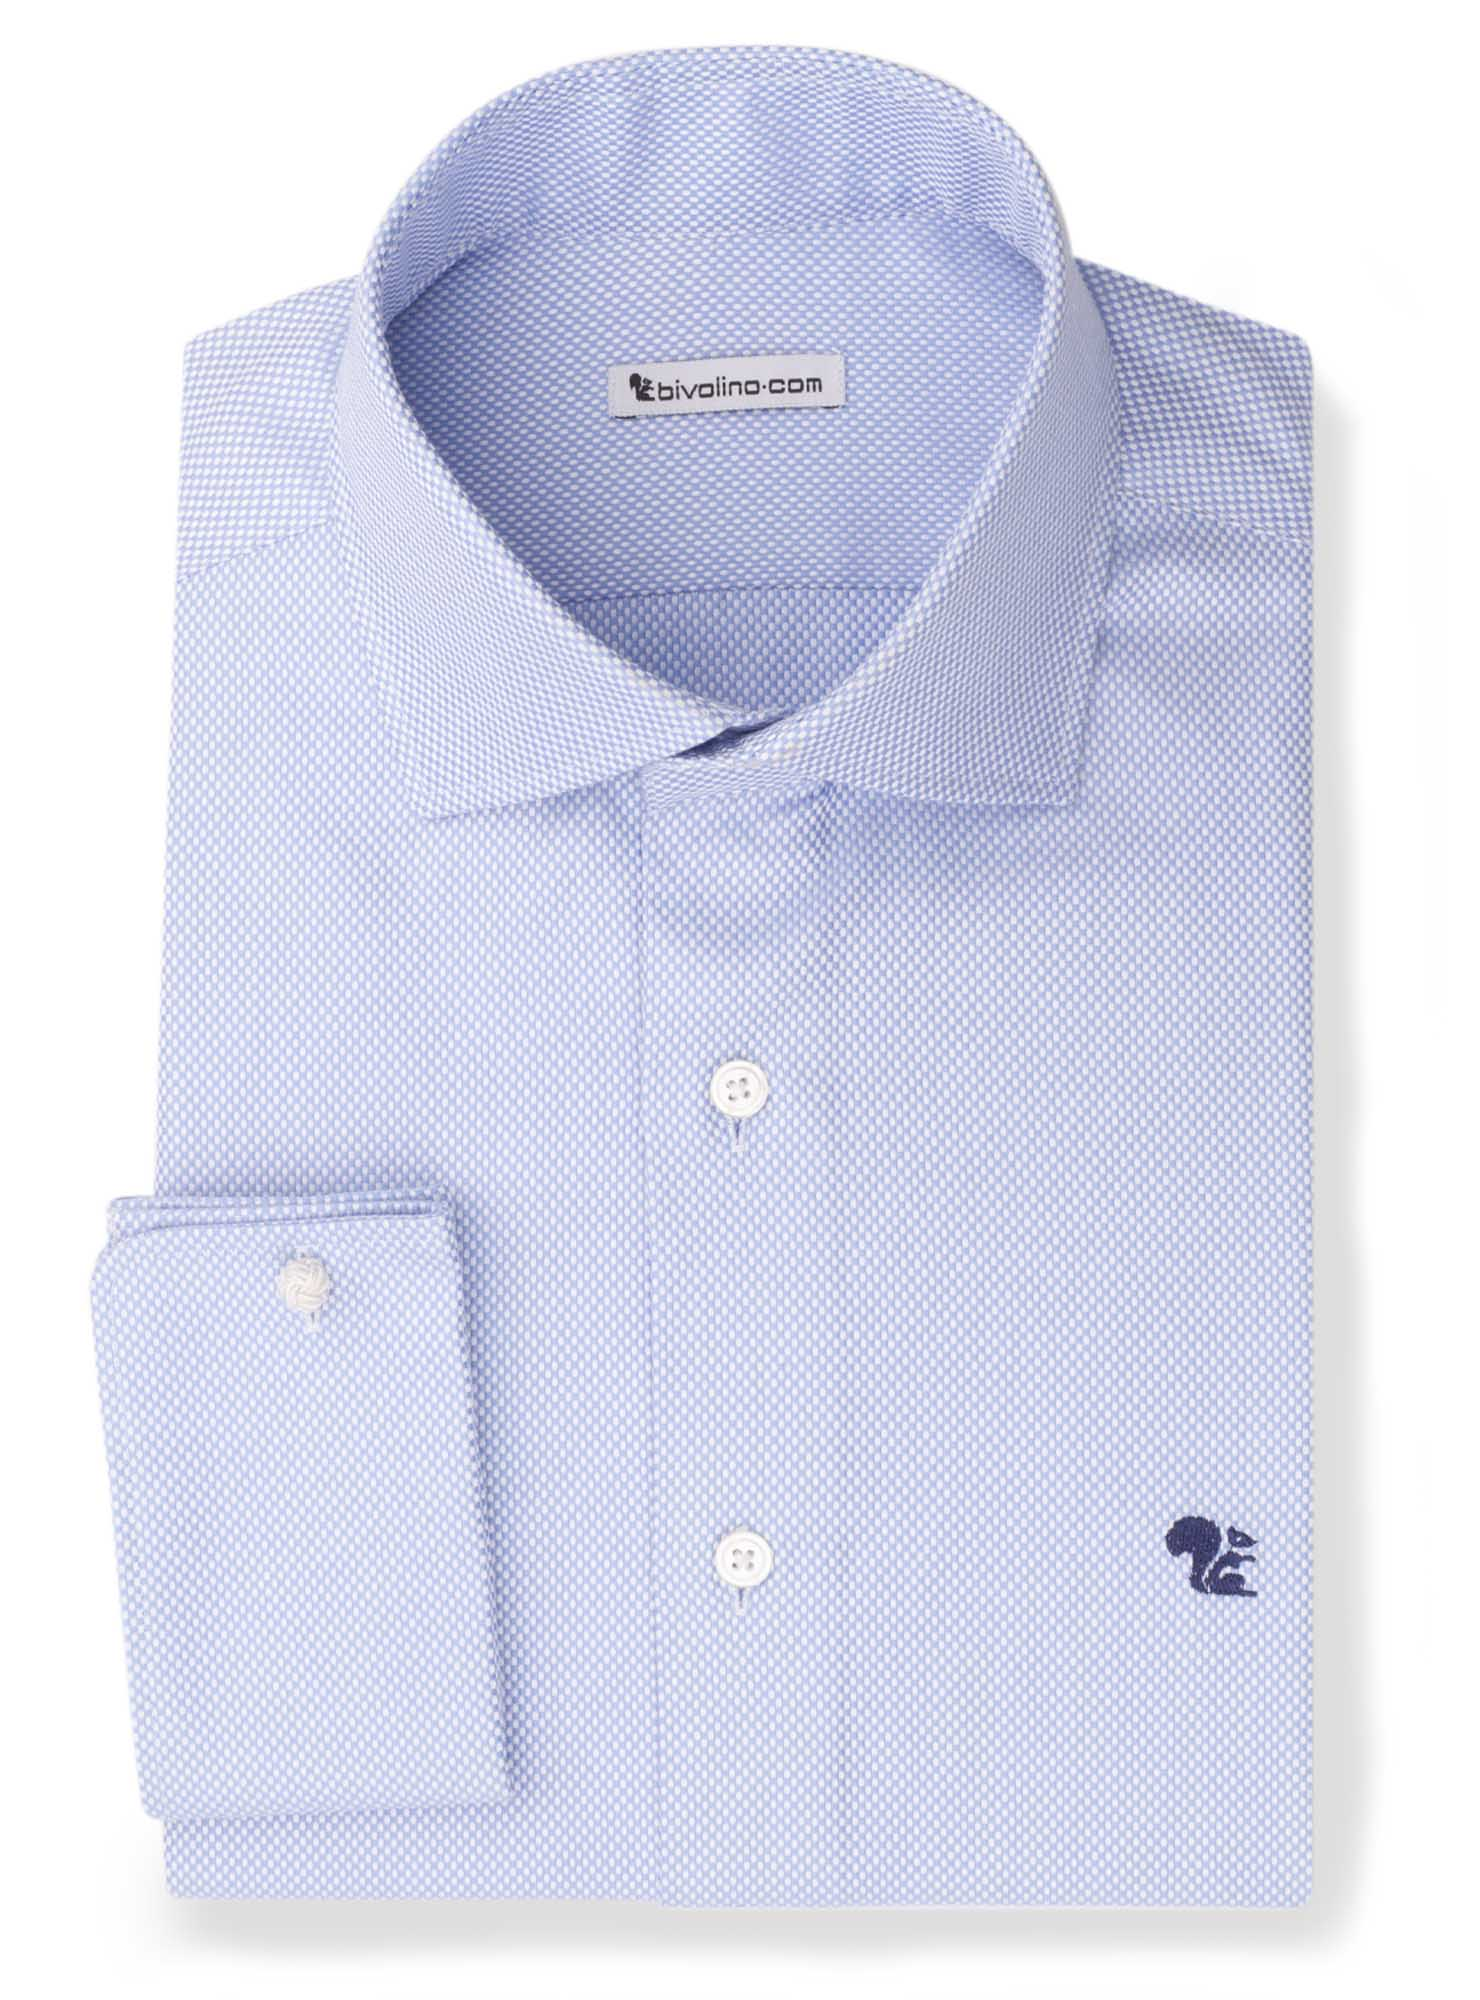 BIDFILIANO - Blue dobby shirt - Bedford 2